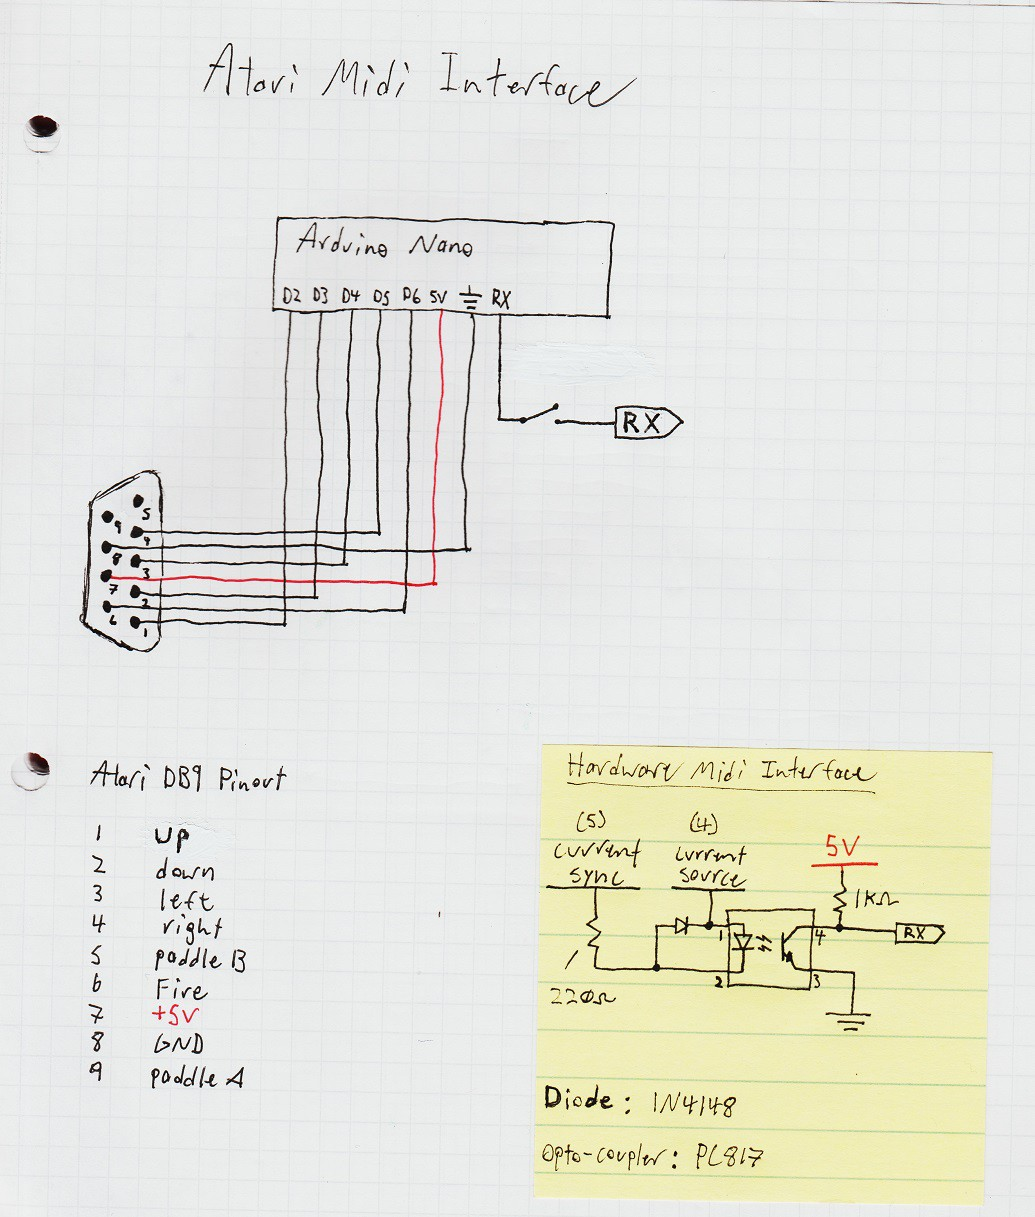 Syndrum An Atari 2600 Drum Machine Midi Cable Schematic The 5 And 4 Over Current Sync